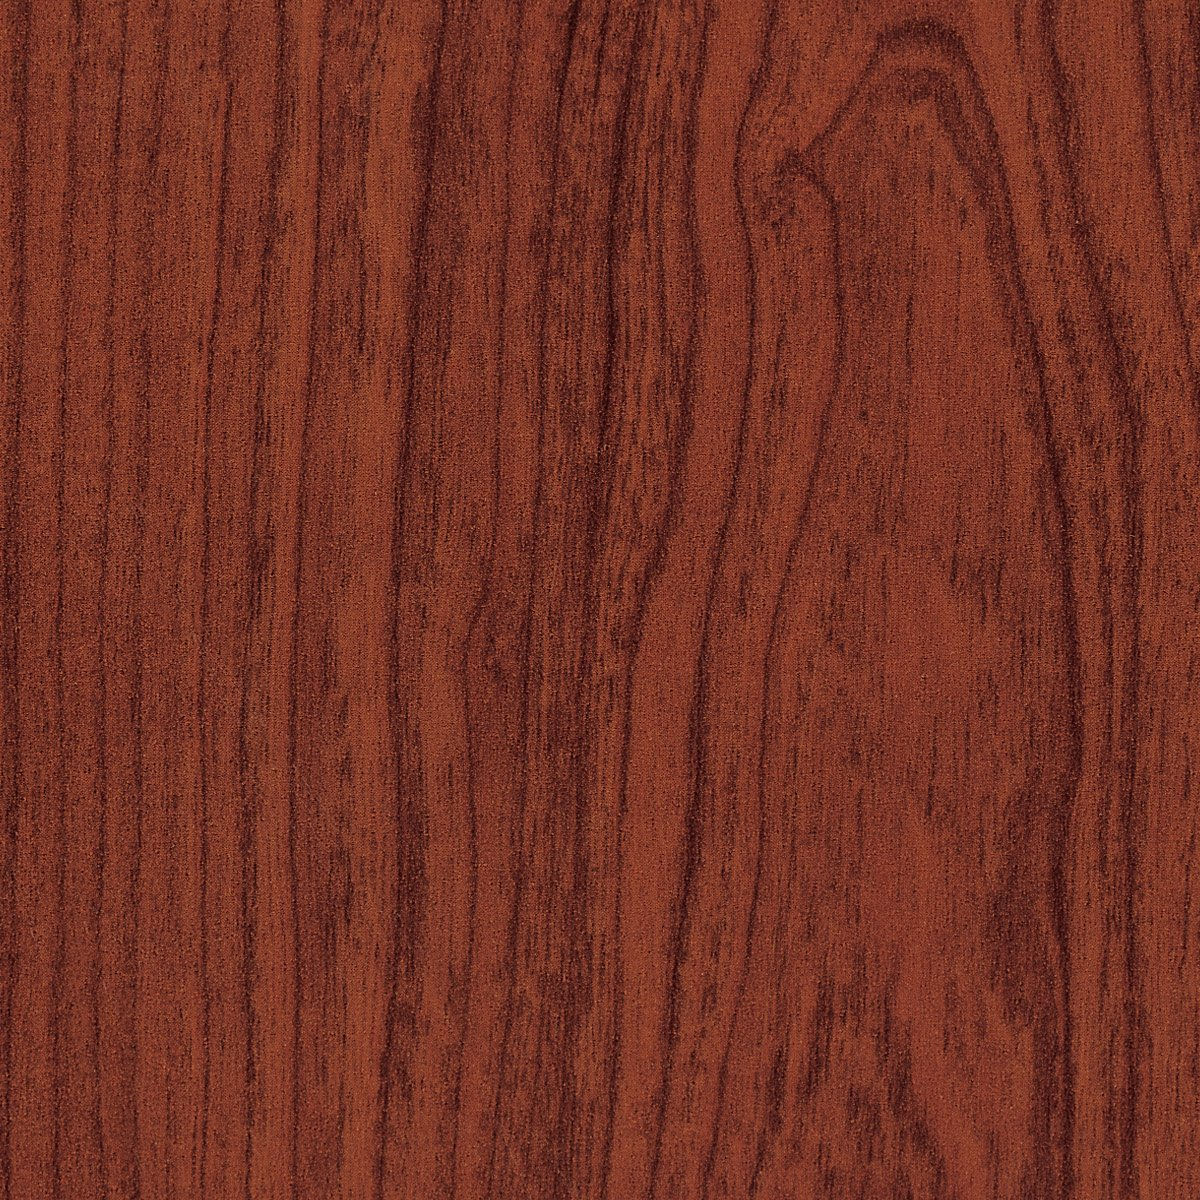 Formica Brand Laminate 077591243512000 Select Cherry Laminate, Select Cherry Artisan